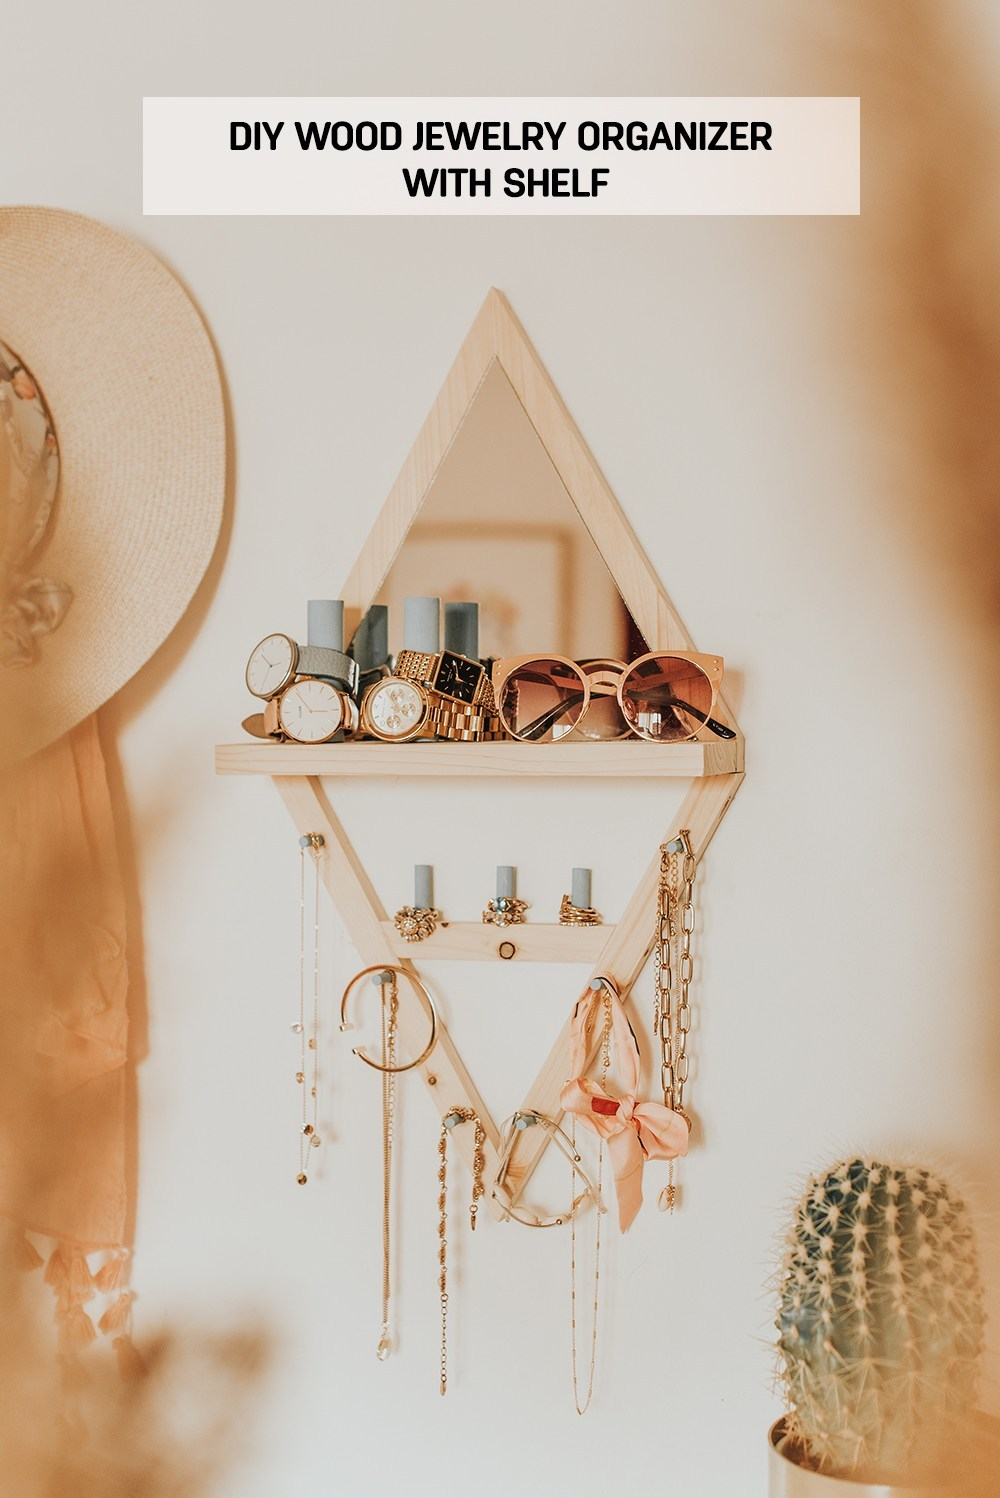 DIY-Wood-Jewelry-Organizer-With-Shelf-main